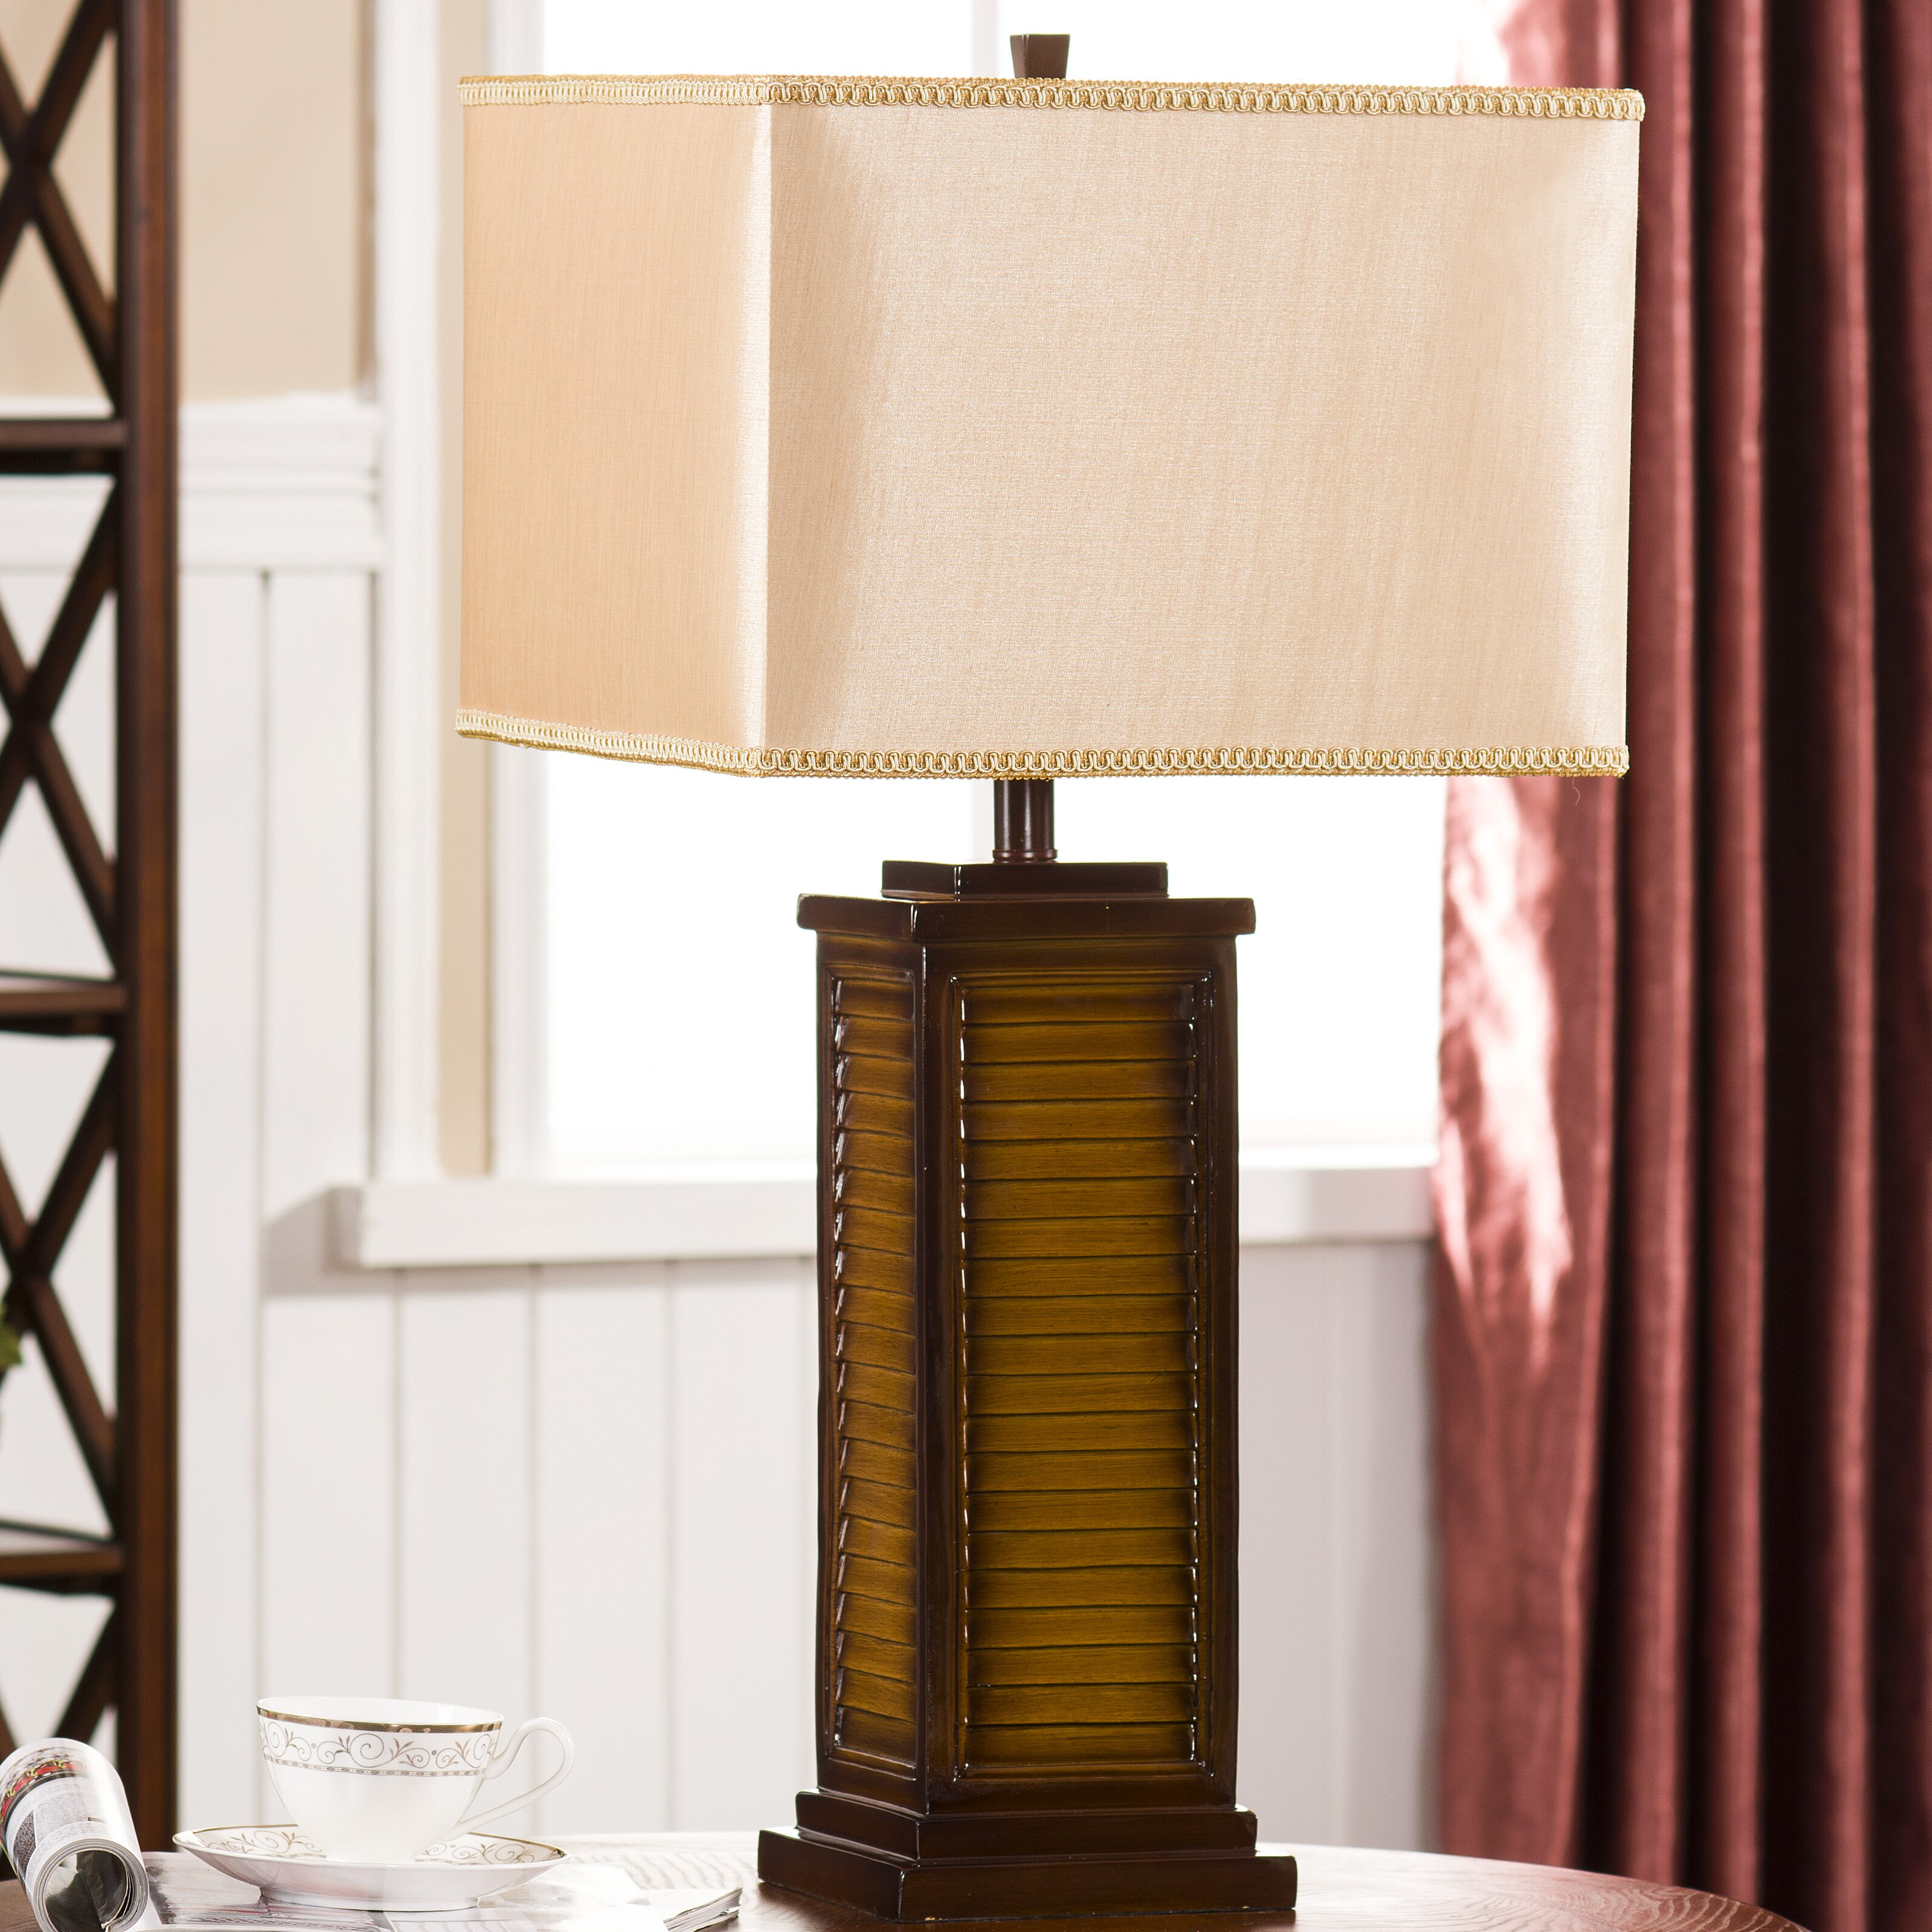 Inroom designs 30 table lamp wayfair In room designs